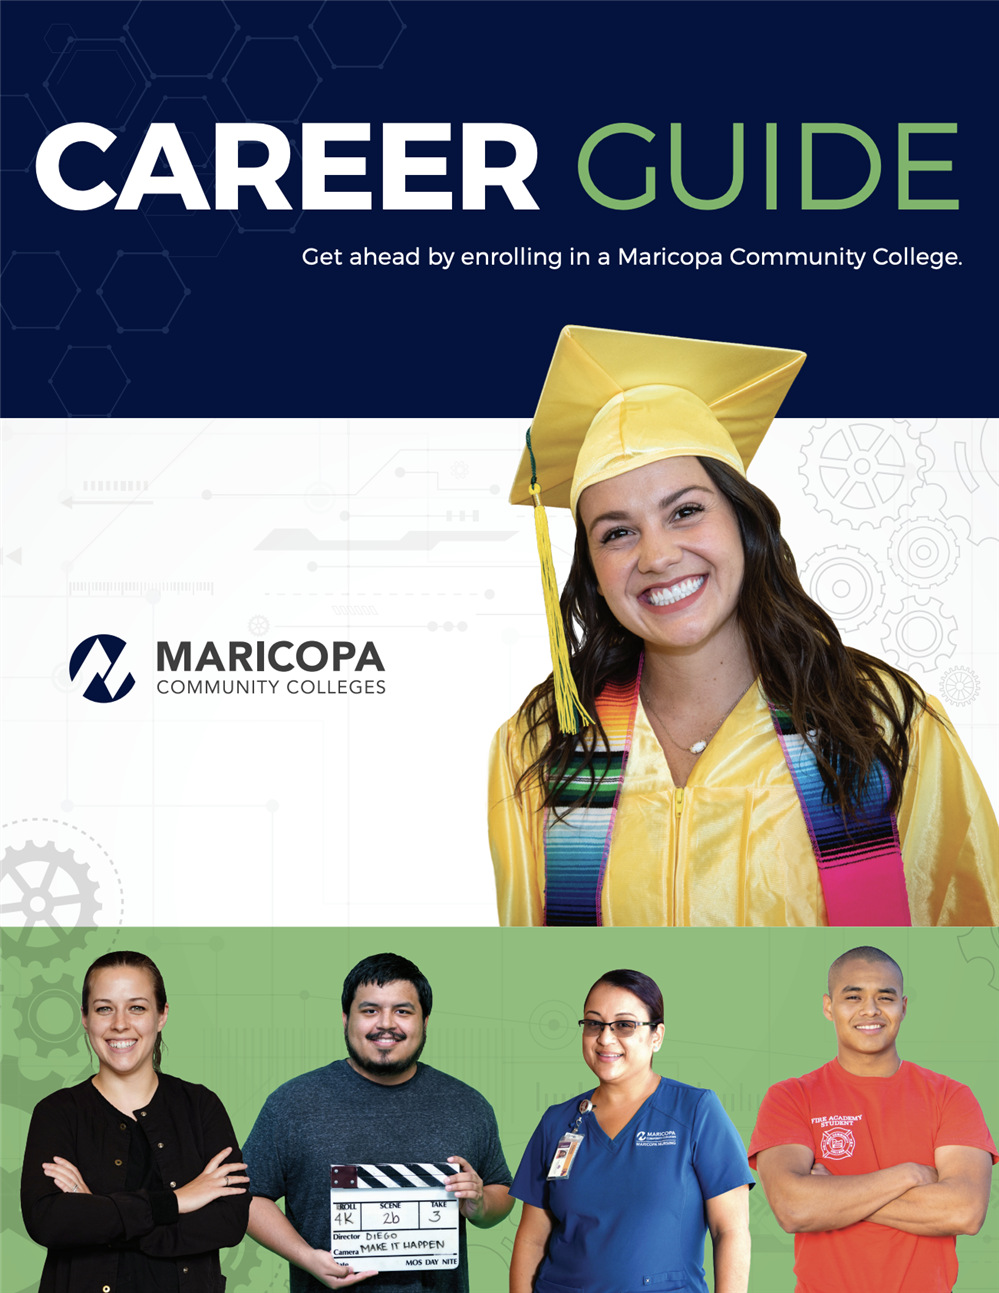 Maricopa Community Colleges Career Guide